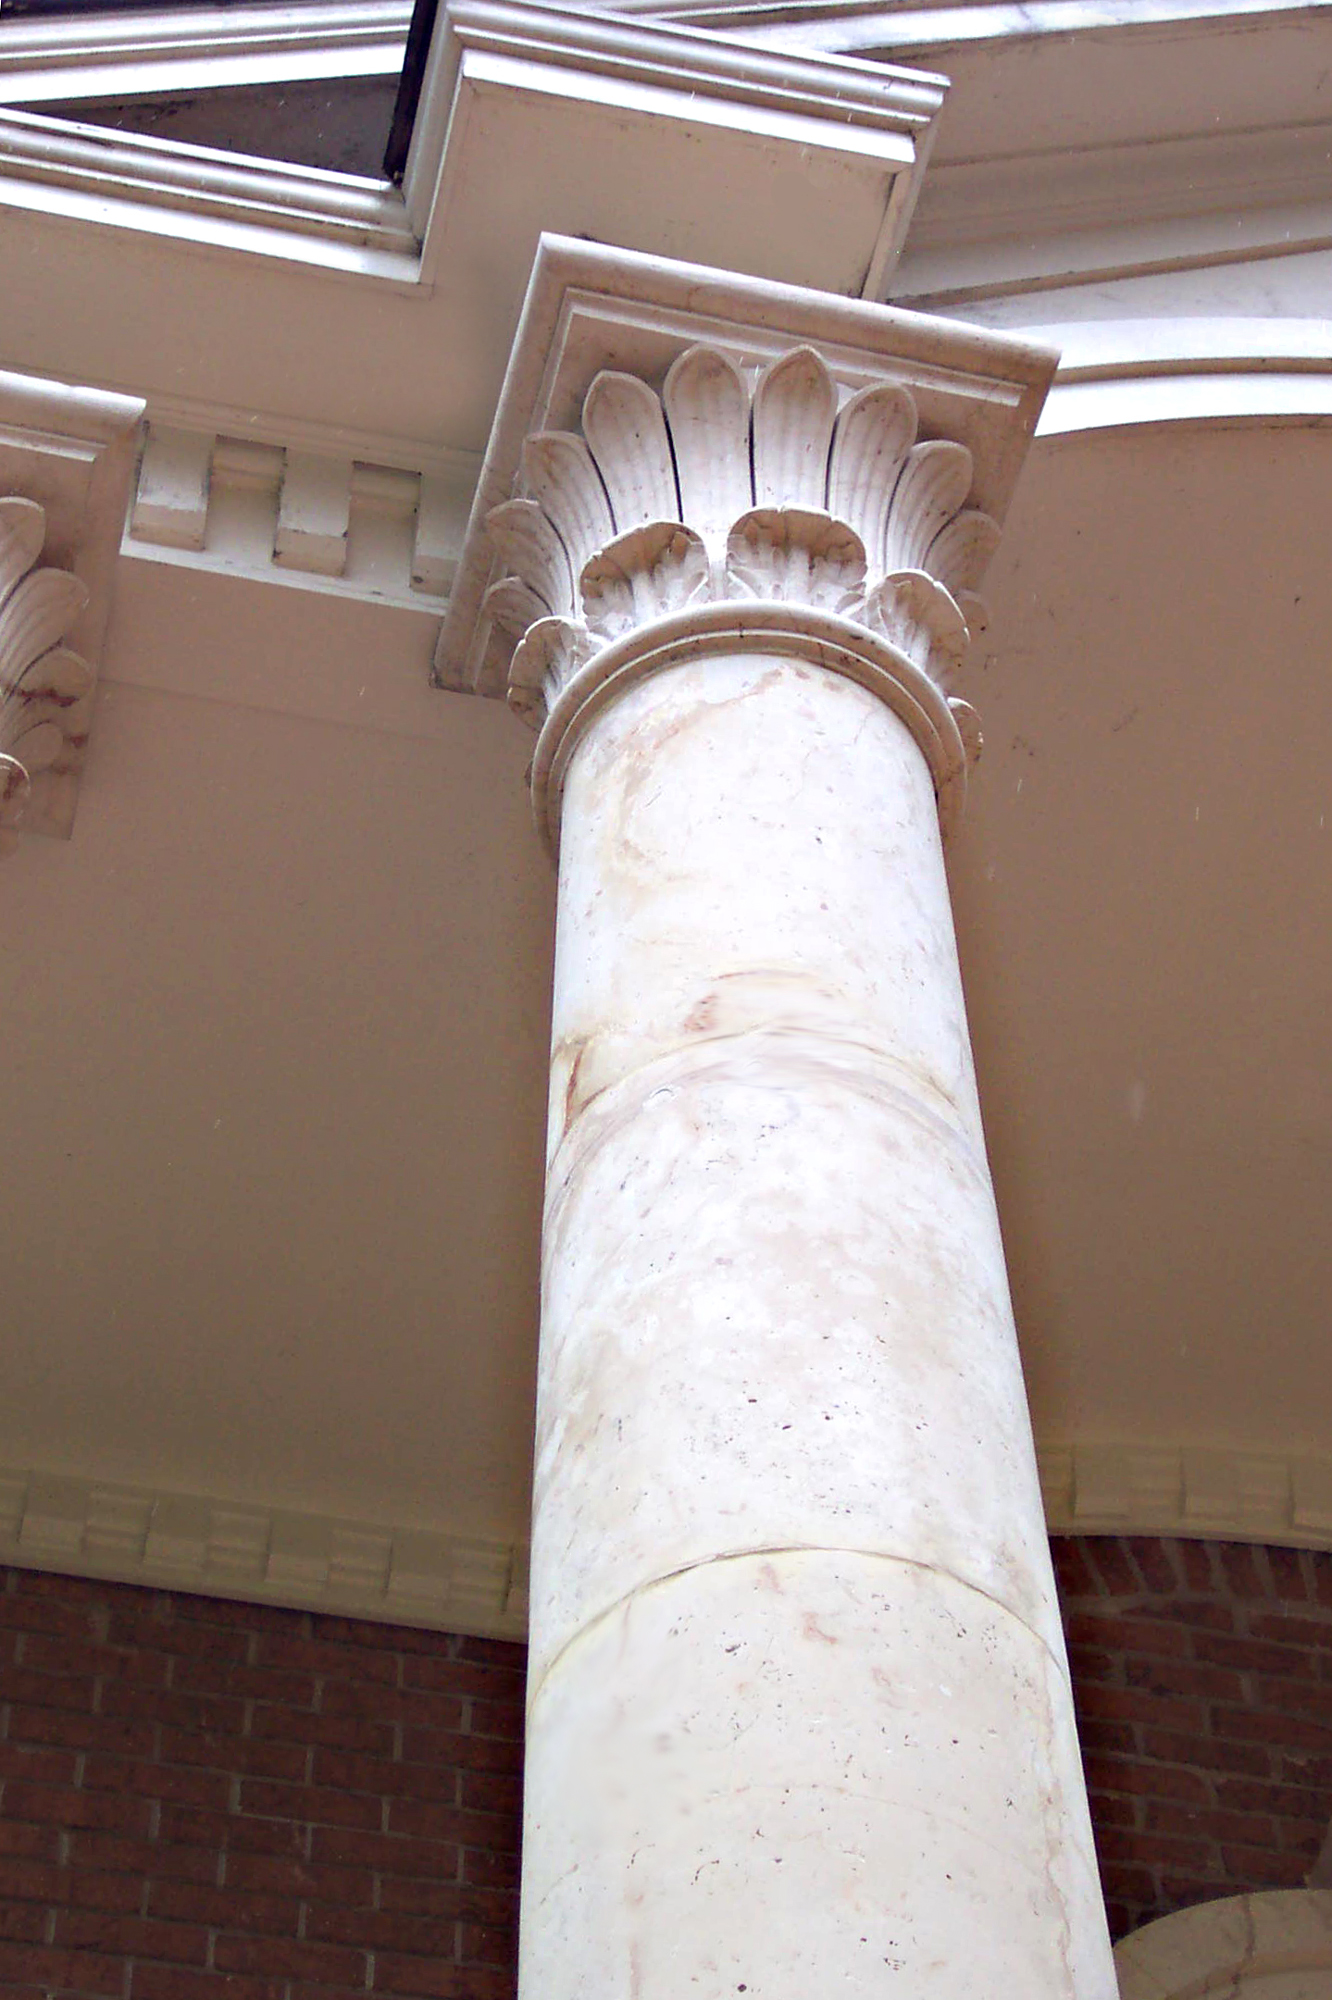 Nasser_Atlanta_Large Column capital detail_DCP_3013.jpg